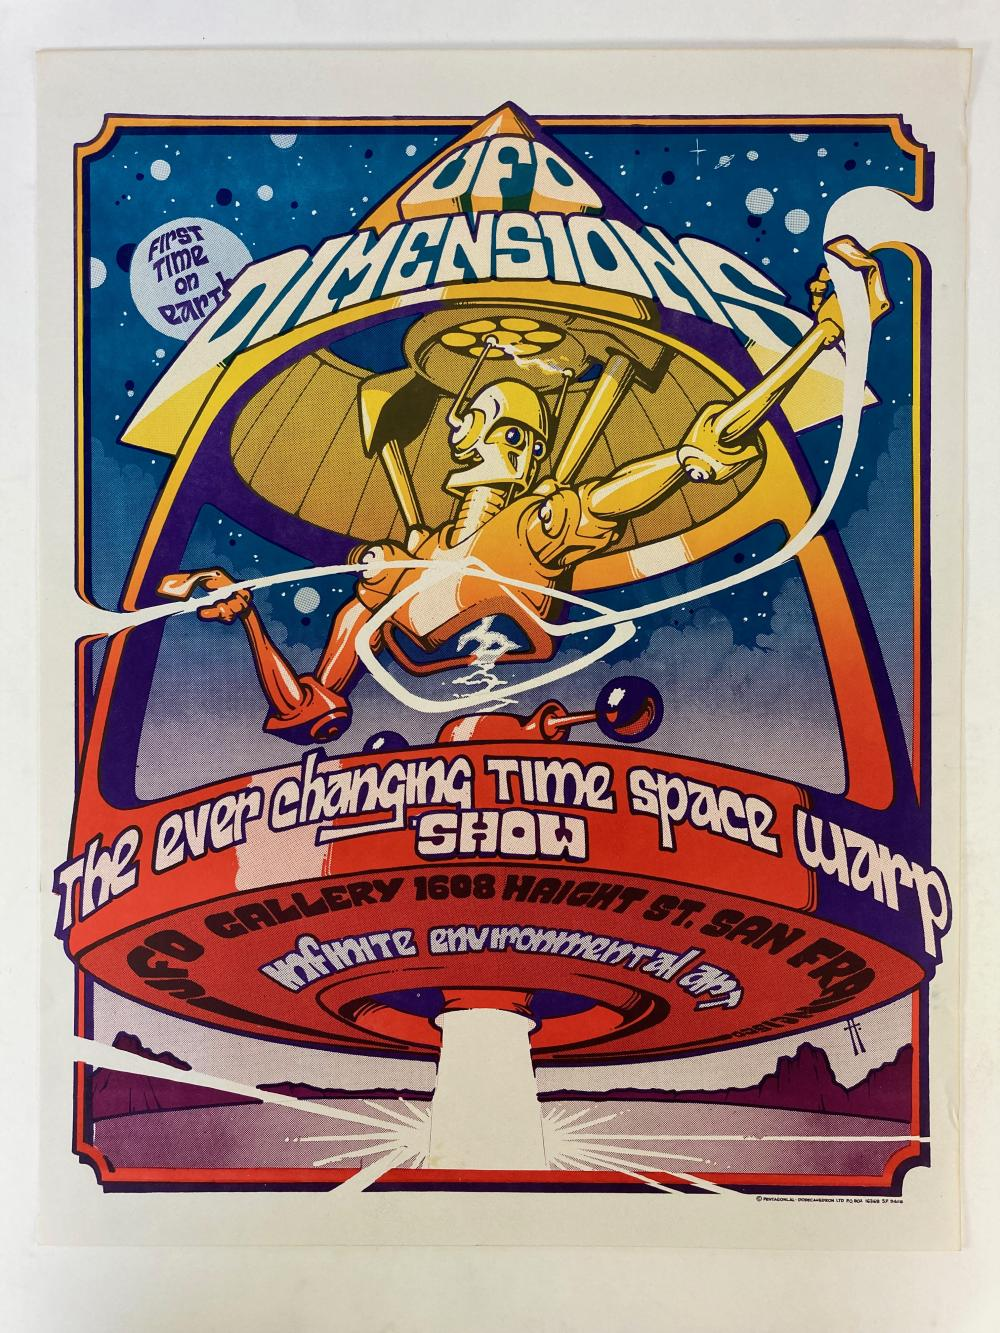 UFO DIMENSIONS. The ever changing time space warp show. UFO Gallery (…) San